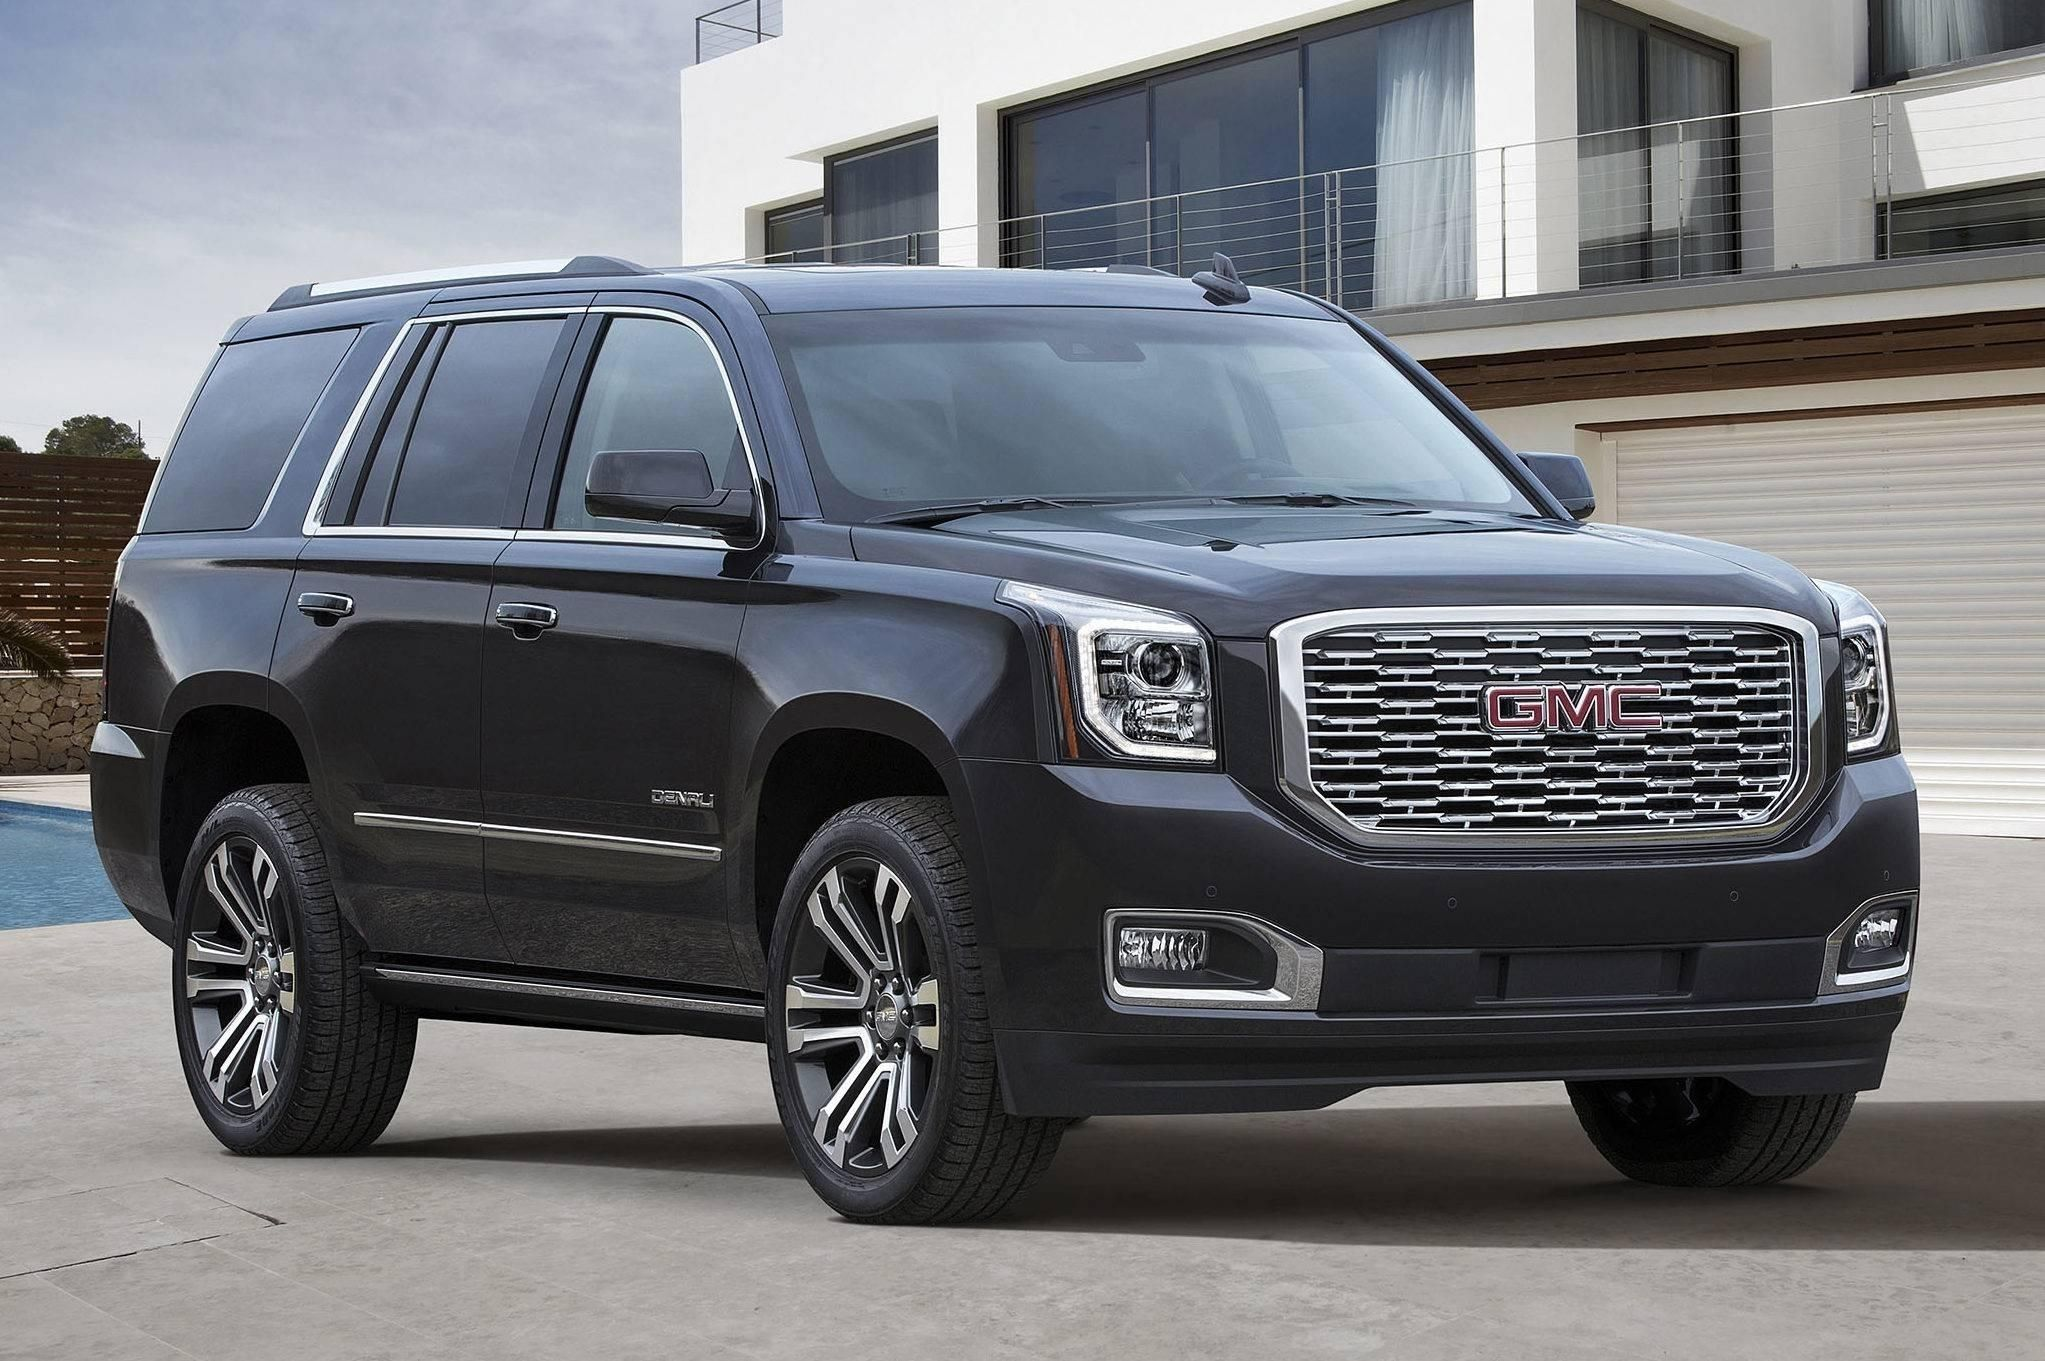 2019 Gmc Envoy Redesign Car 2018 2019 Within 2019 Gmc Envoy Exterior And Interior Review Gmc Yukon Denali Yukon Denali 2018 Gmc Yukon